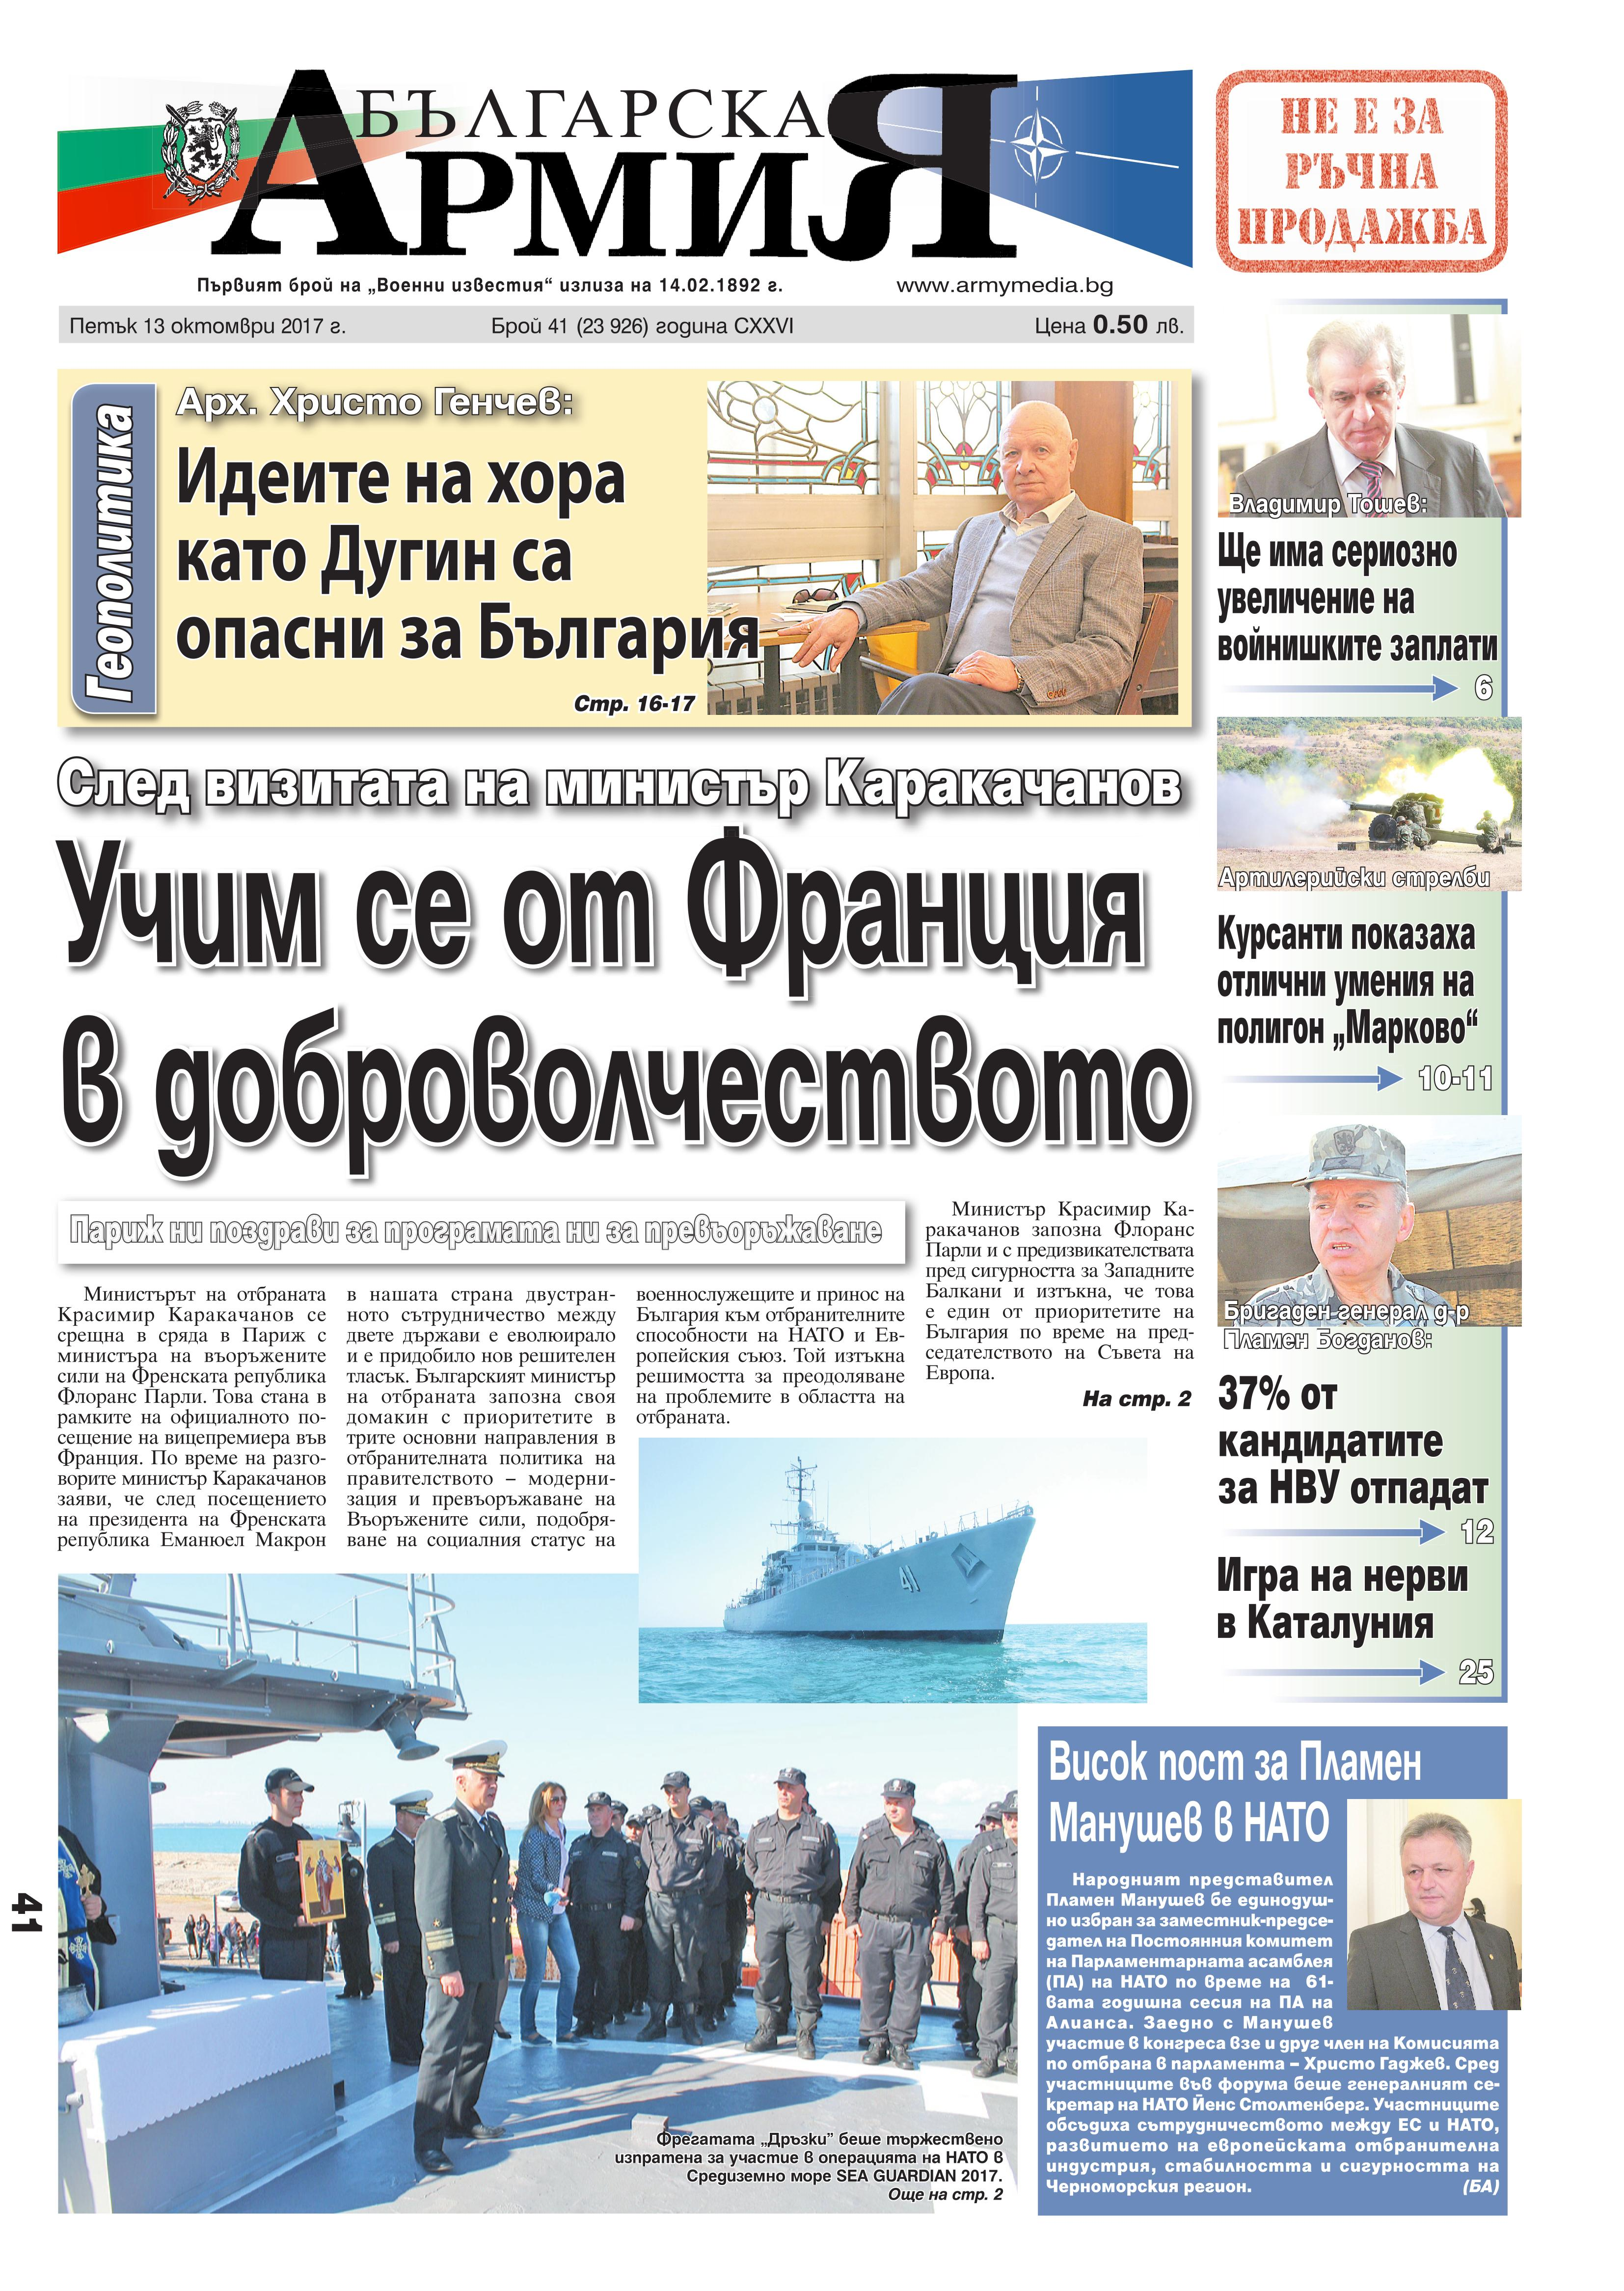 http://armymedia.bg/wp-content/uploads/2015/06/01.page1_-32.jpg